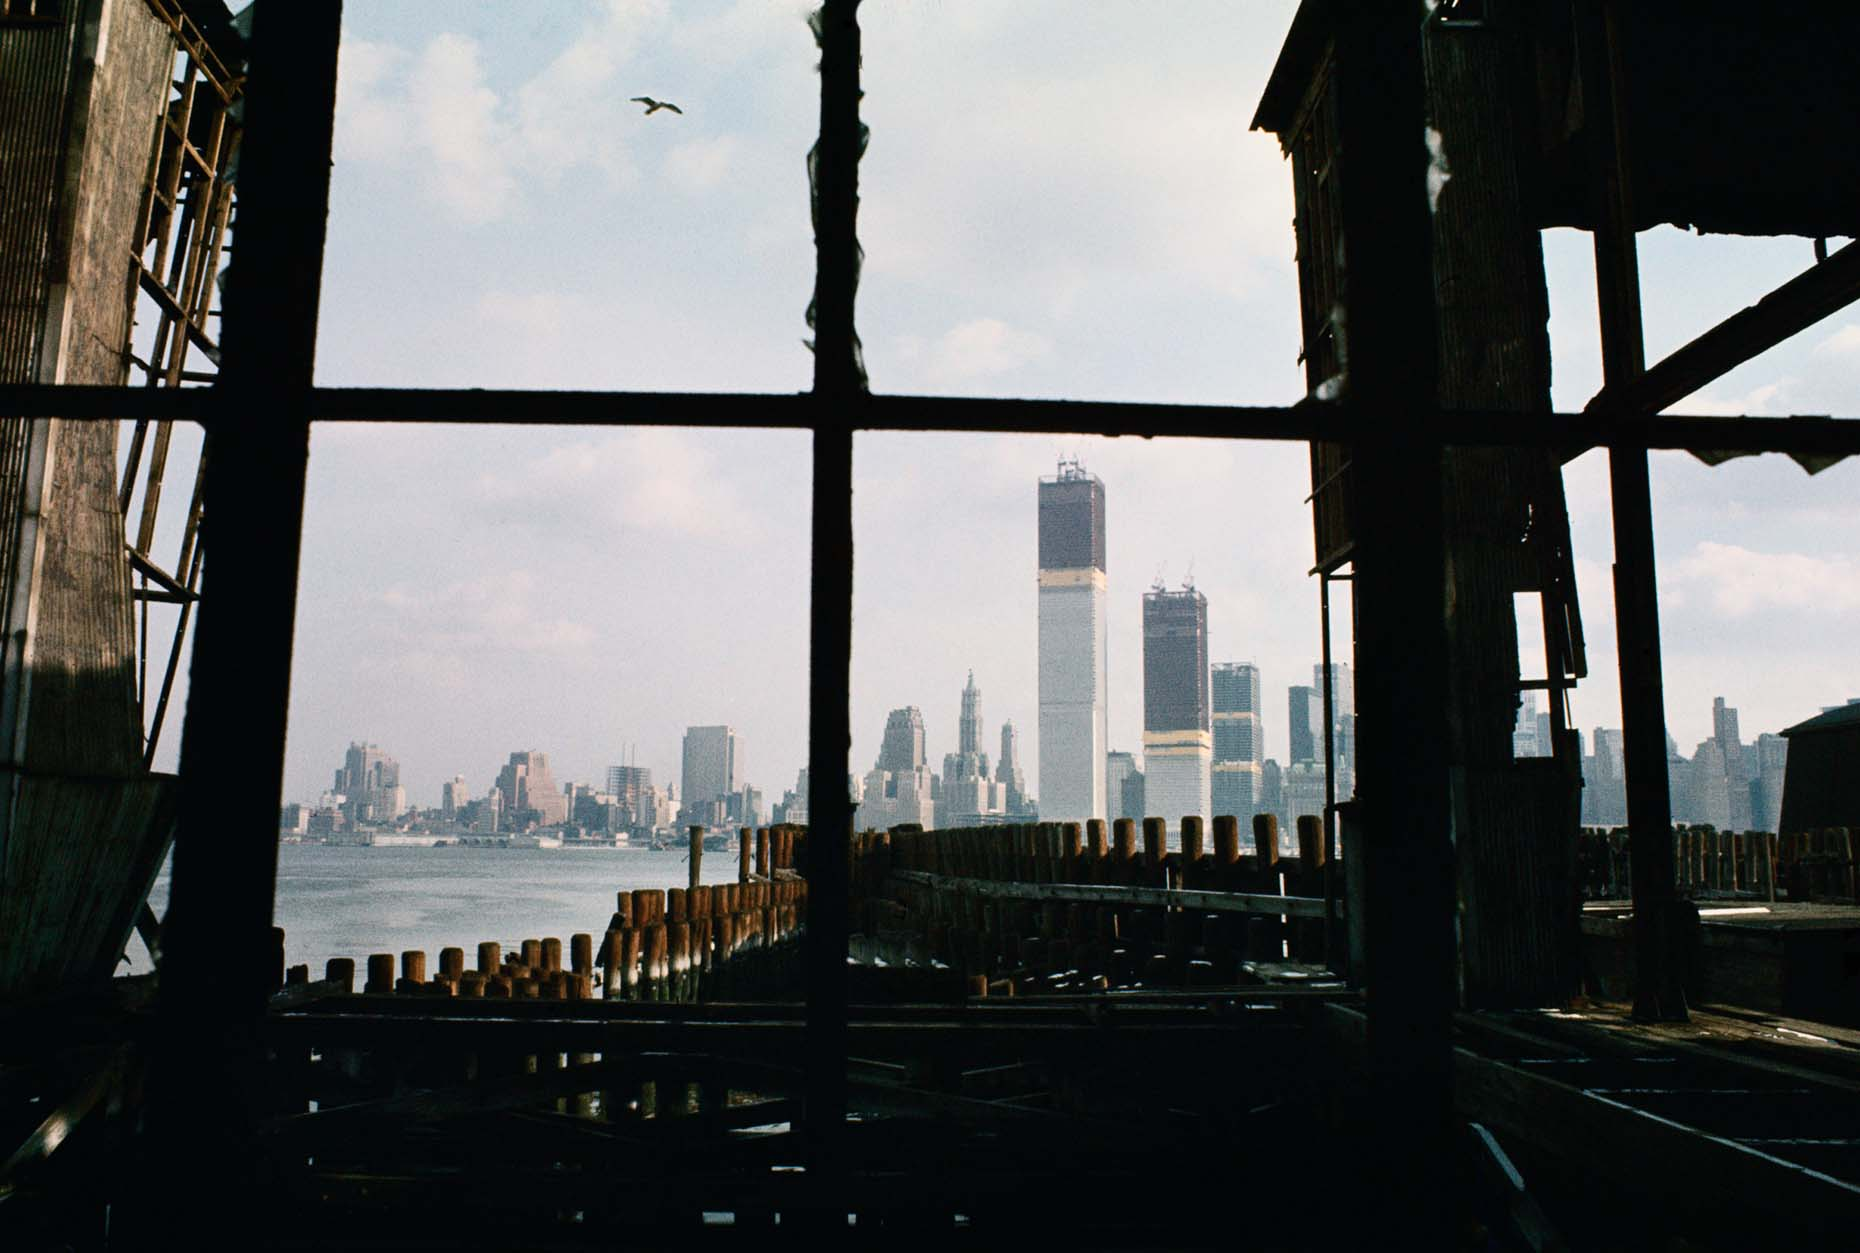 01_View from abandoned pier, Jersey City, New Jersey, 1970_-DUP1.jpg